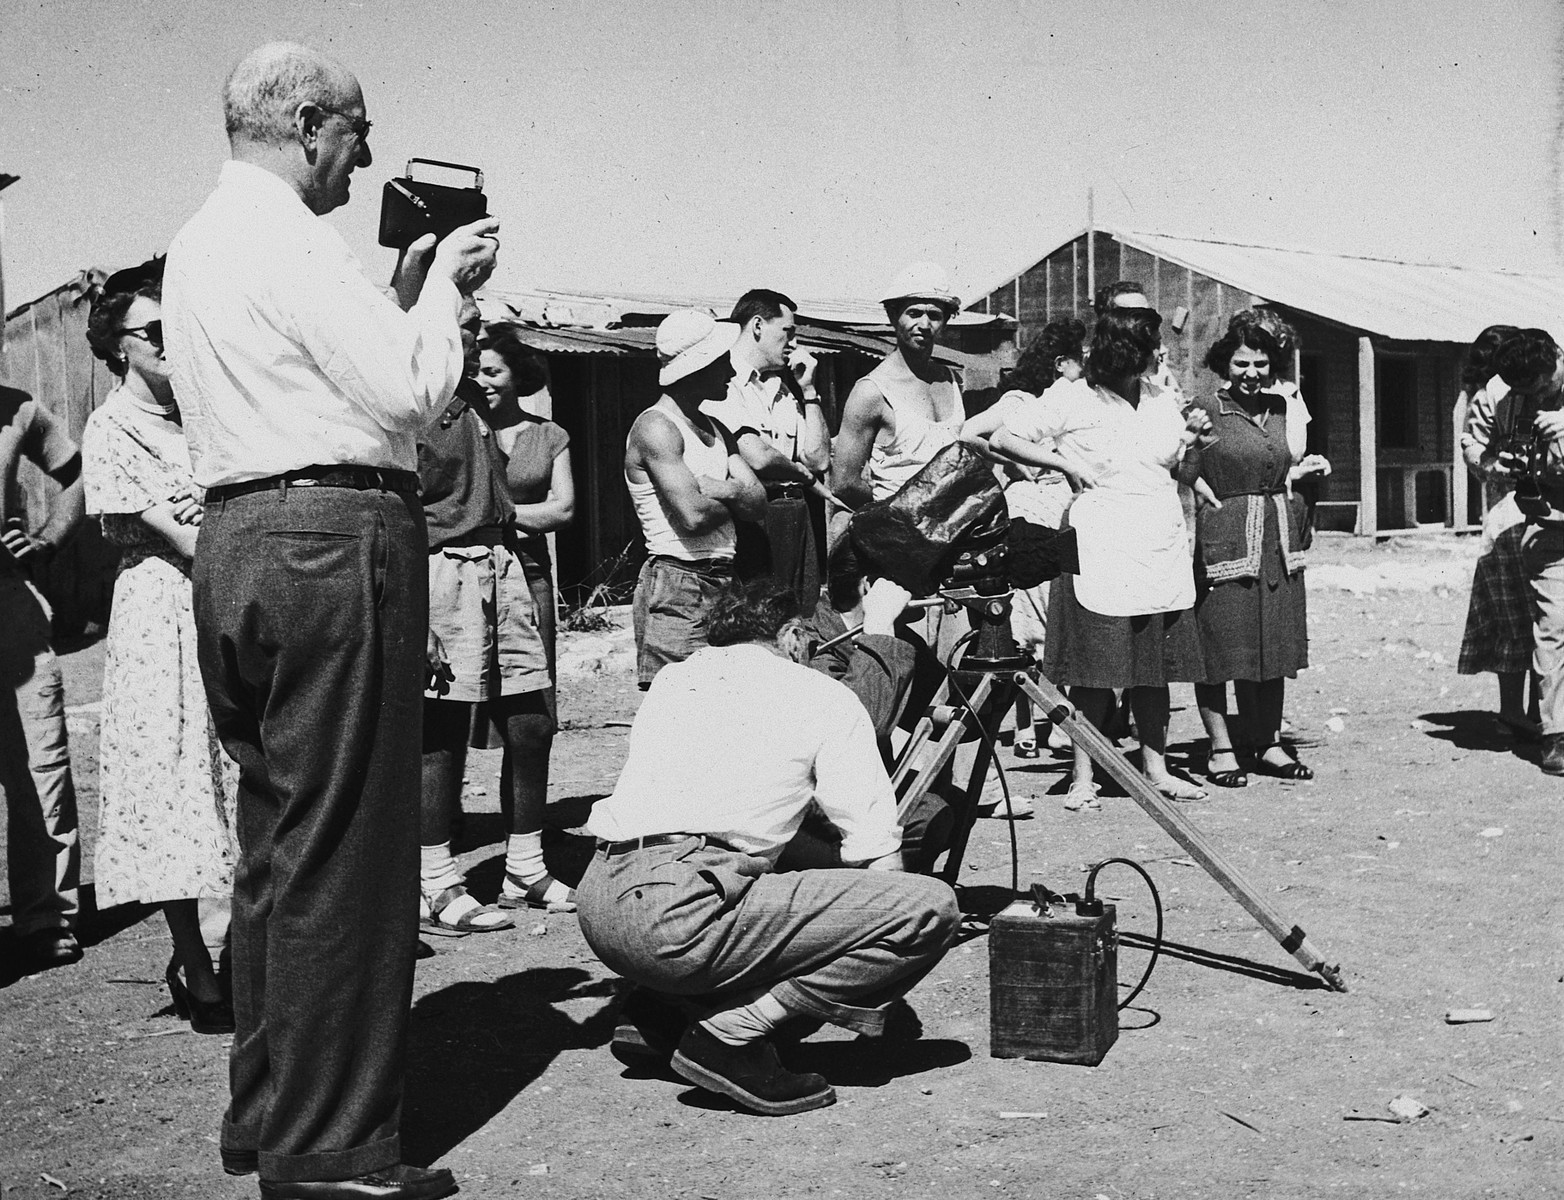 """Henry Morgenthau Jr. takes photographs of new immigrants in Tel Shachar while Robert Capa films the same scene for his 1951 documentary, """"The Journey"""".    The film was shot at the behest of the United Jewish Appeal.  Henry Morgenthau served as honorary chairman of the Appeal."""